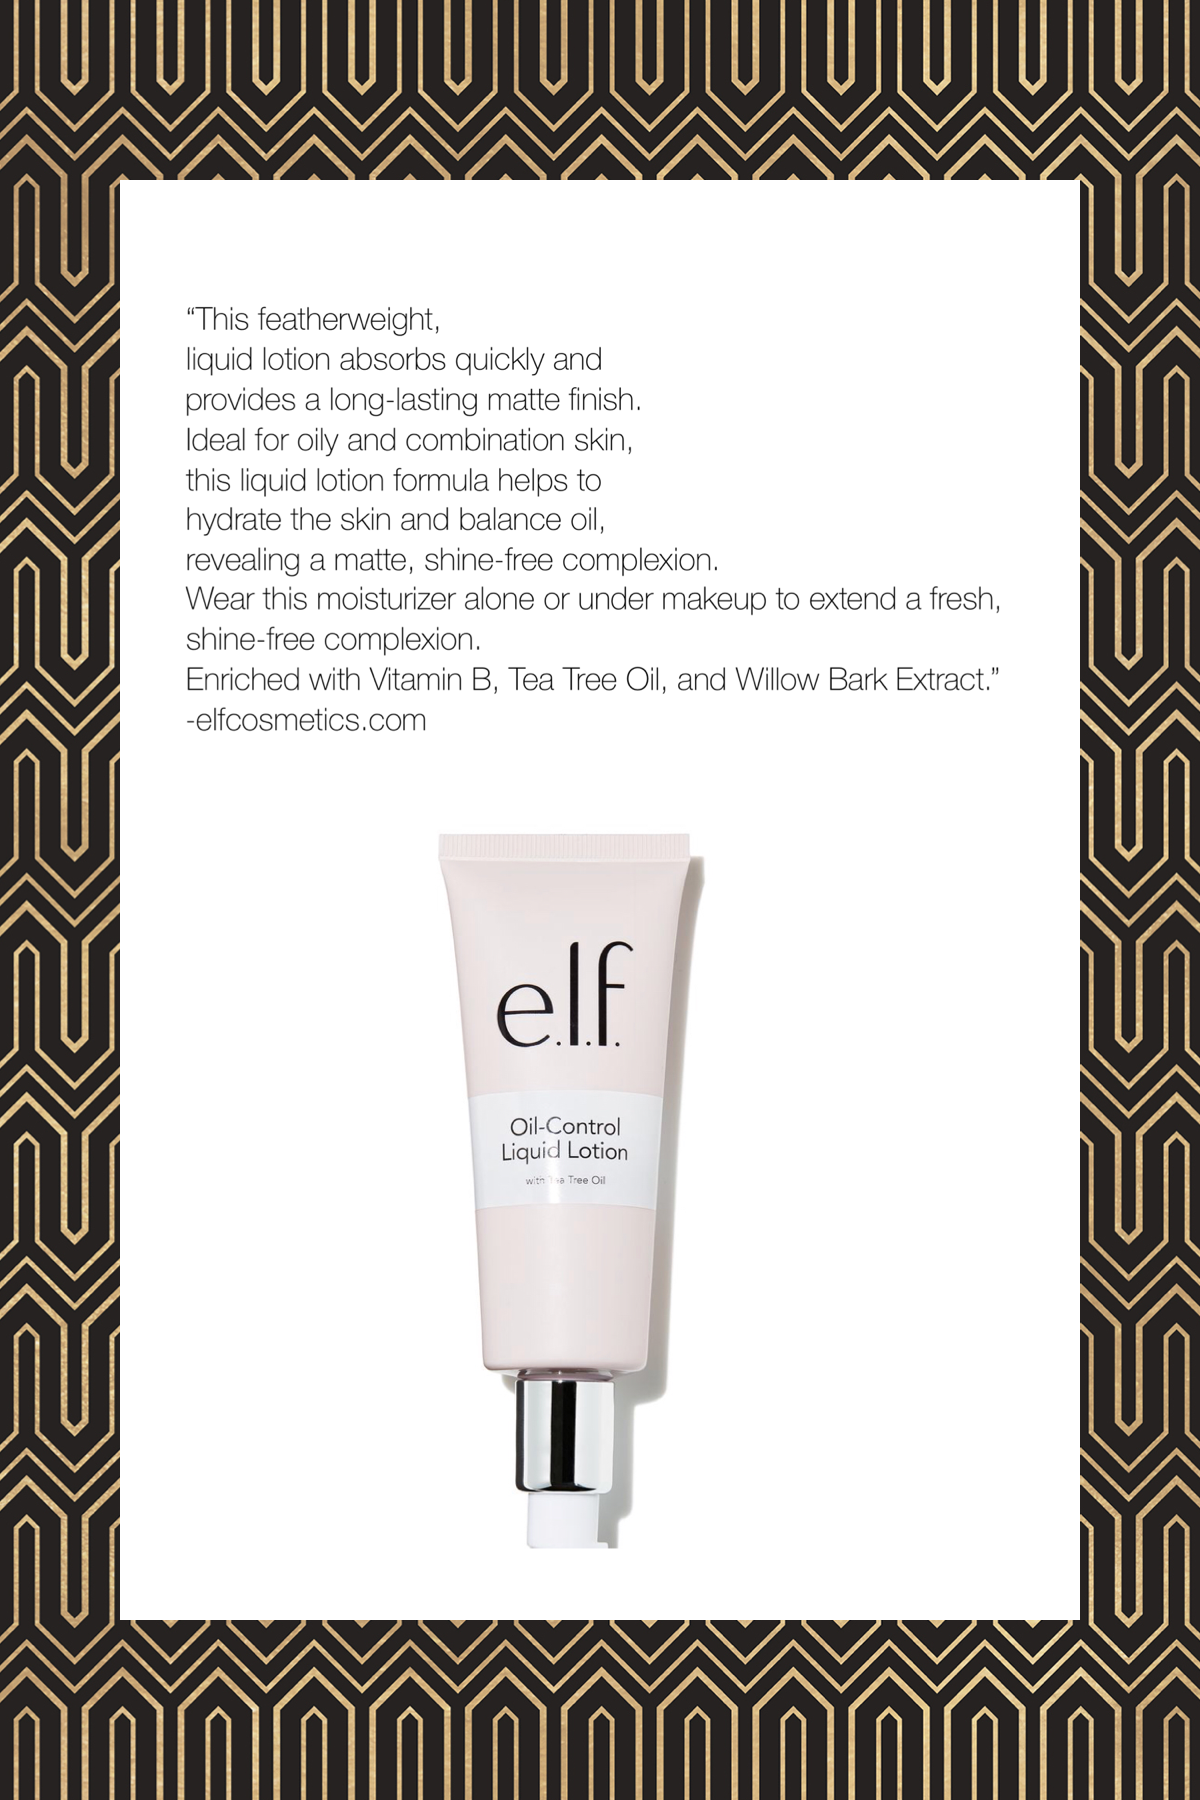 elf+ Mattifying Lotion by e.l.f. #17